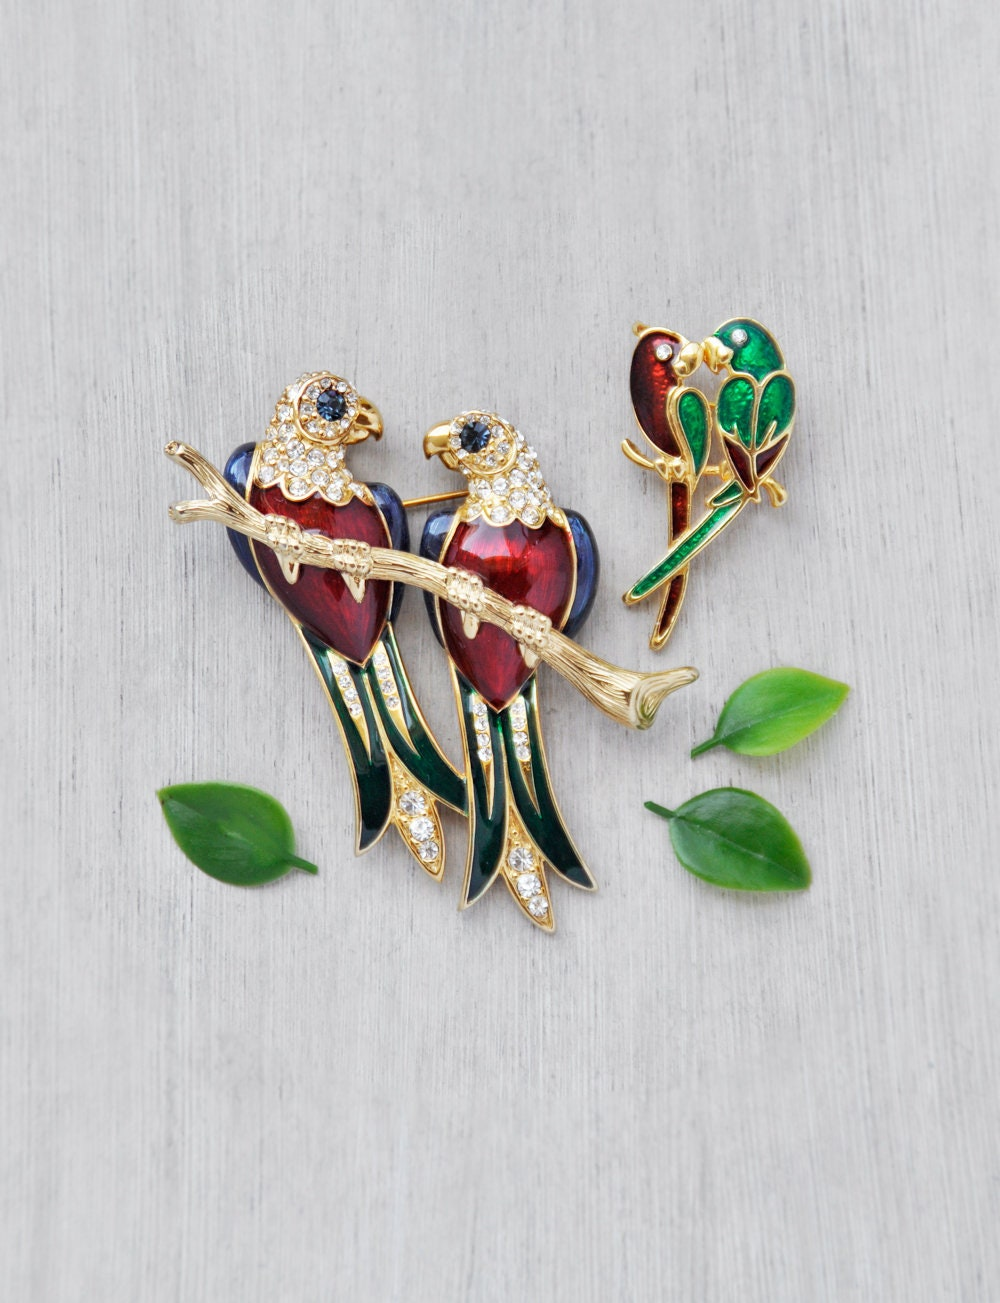 2 Monkey Vintage Costume Jewelry Pins Broach Gold Tone W//Red Belly Googly Eyes